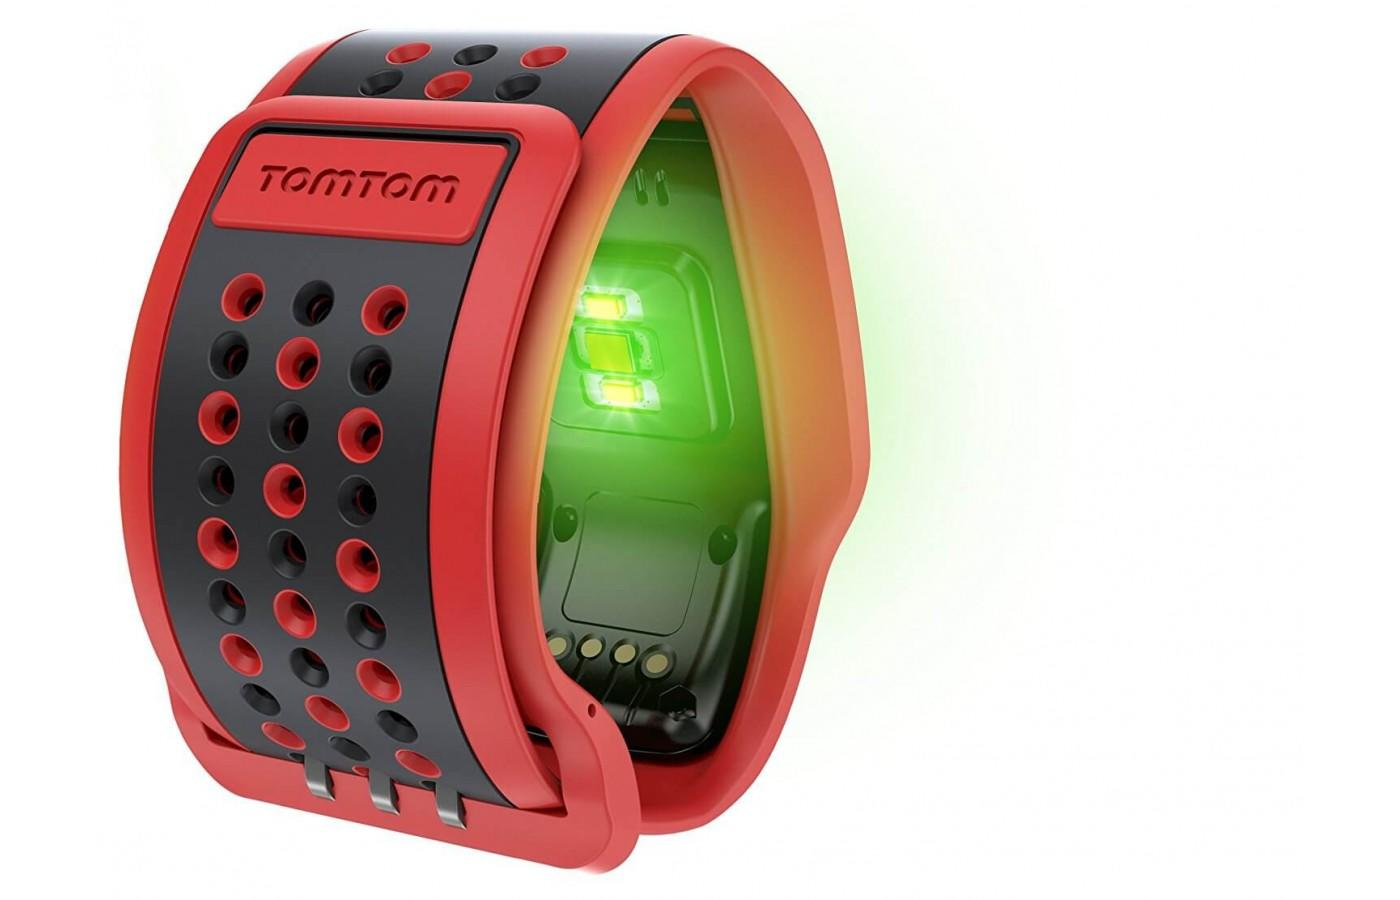 Your heart rate is measured through the wrist band